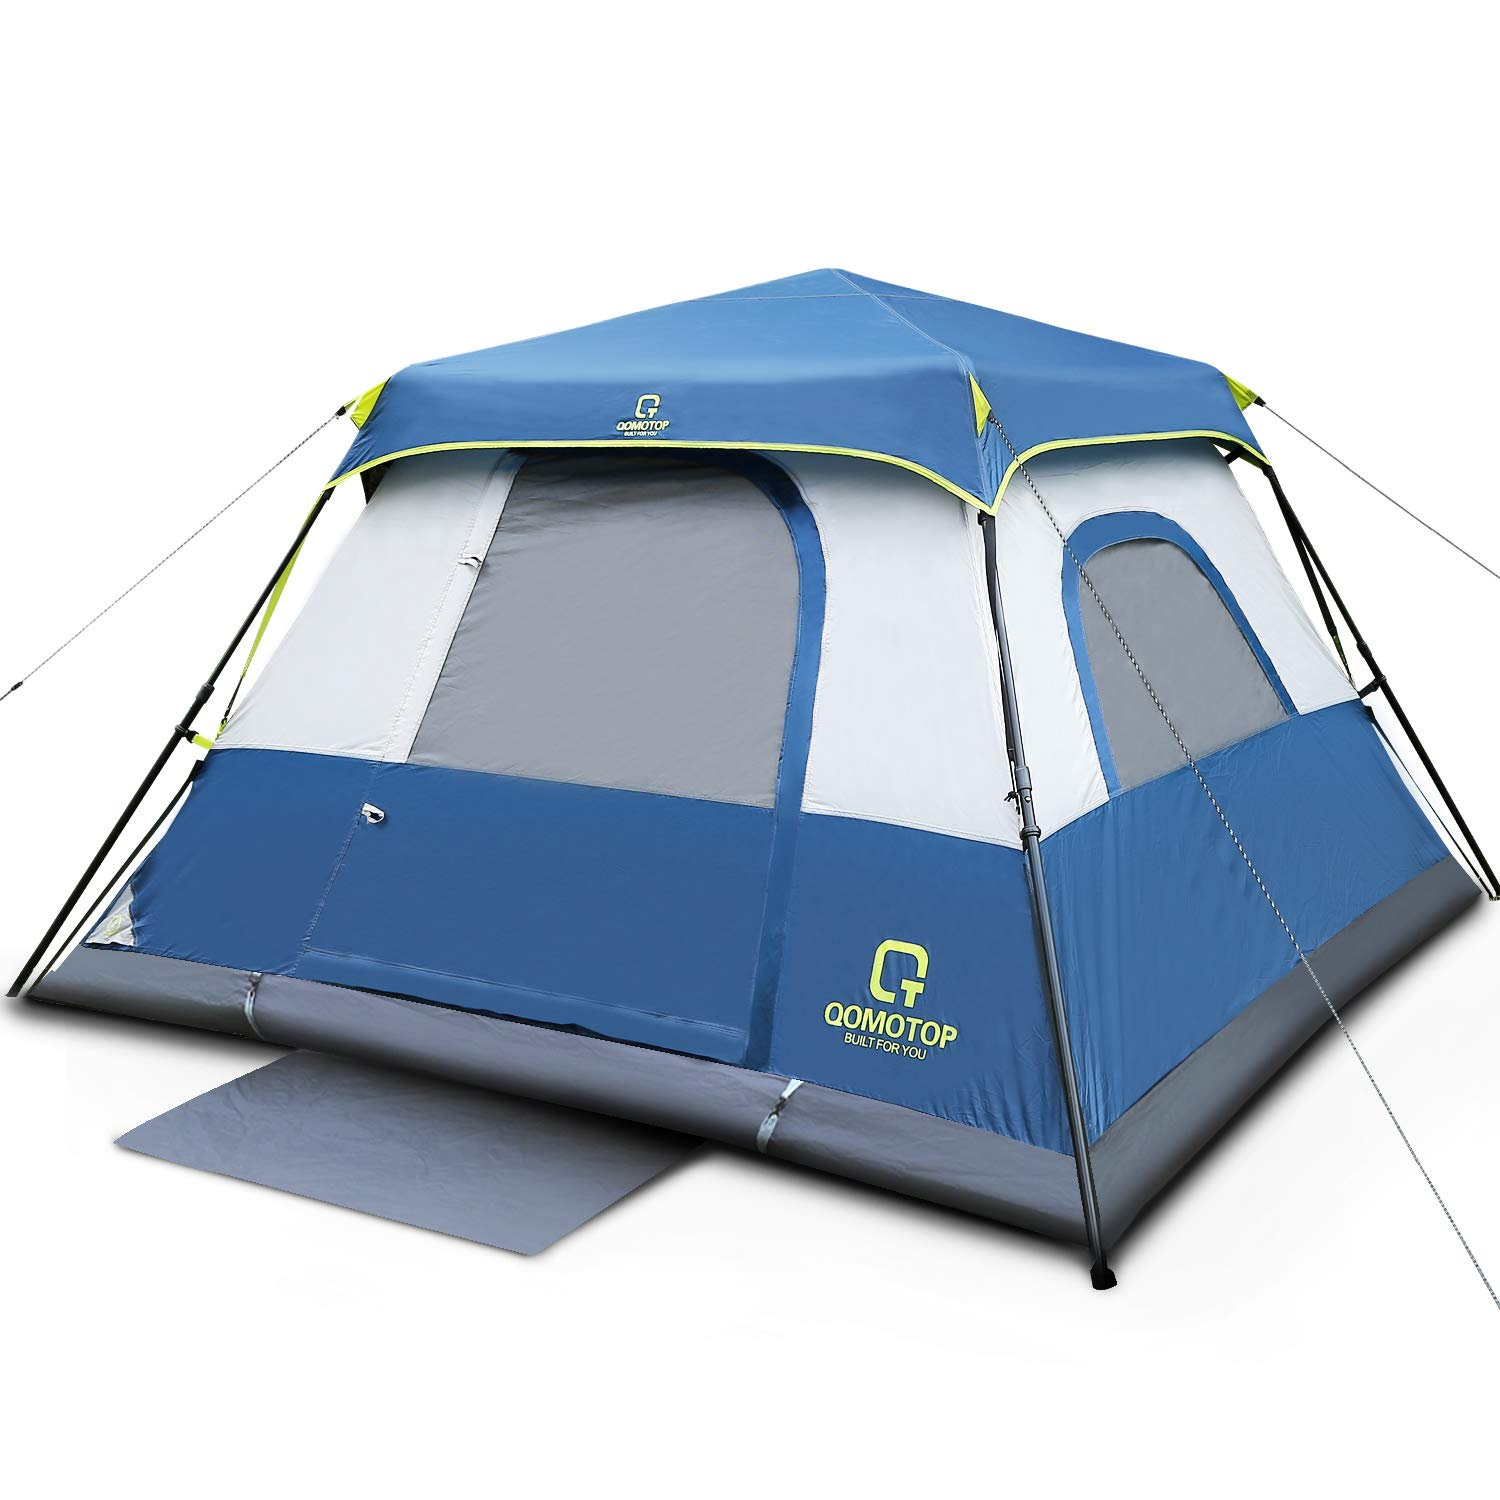 QOMOTOP 4 or 6 People Fast 60 Seconds Easy Set Up Instant Cabin Tent | Best Easiest Tents To Set Up